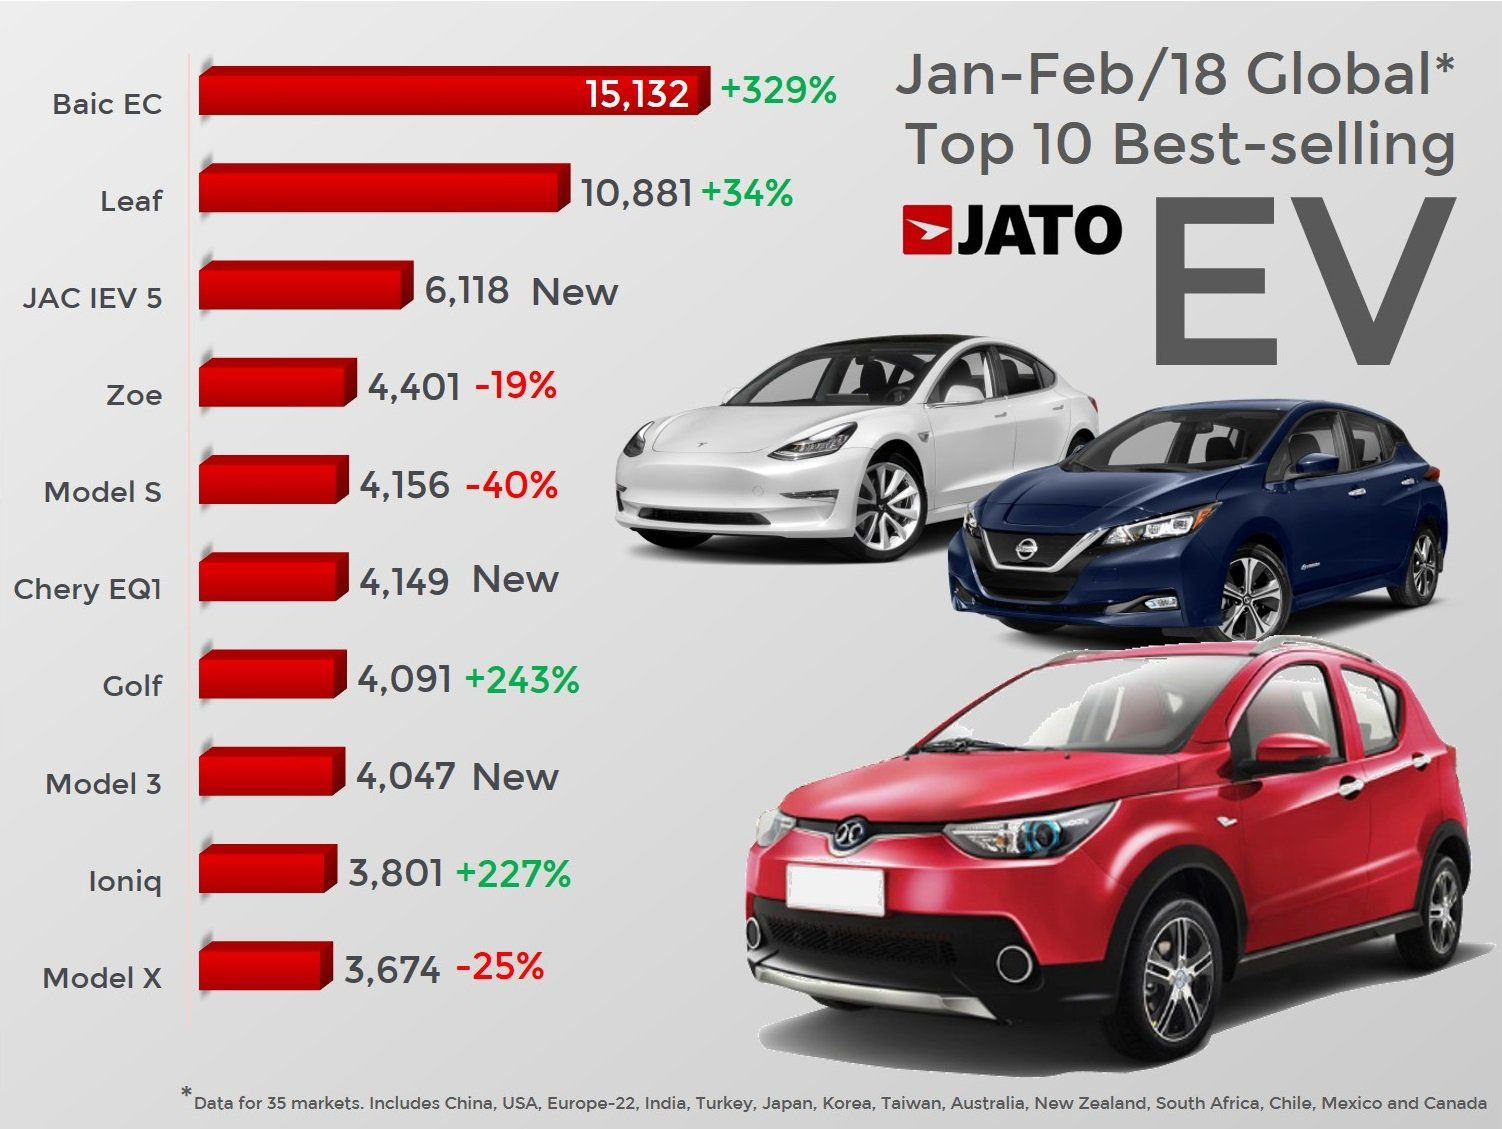 China Electric Car Sales Blow World Out Of The Water — BAIC